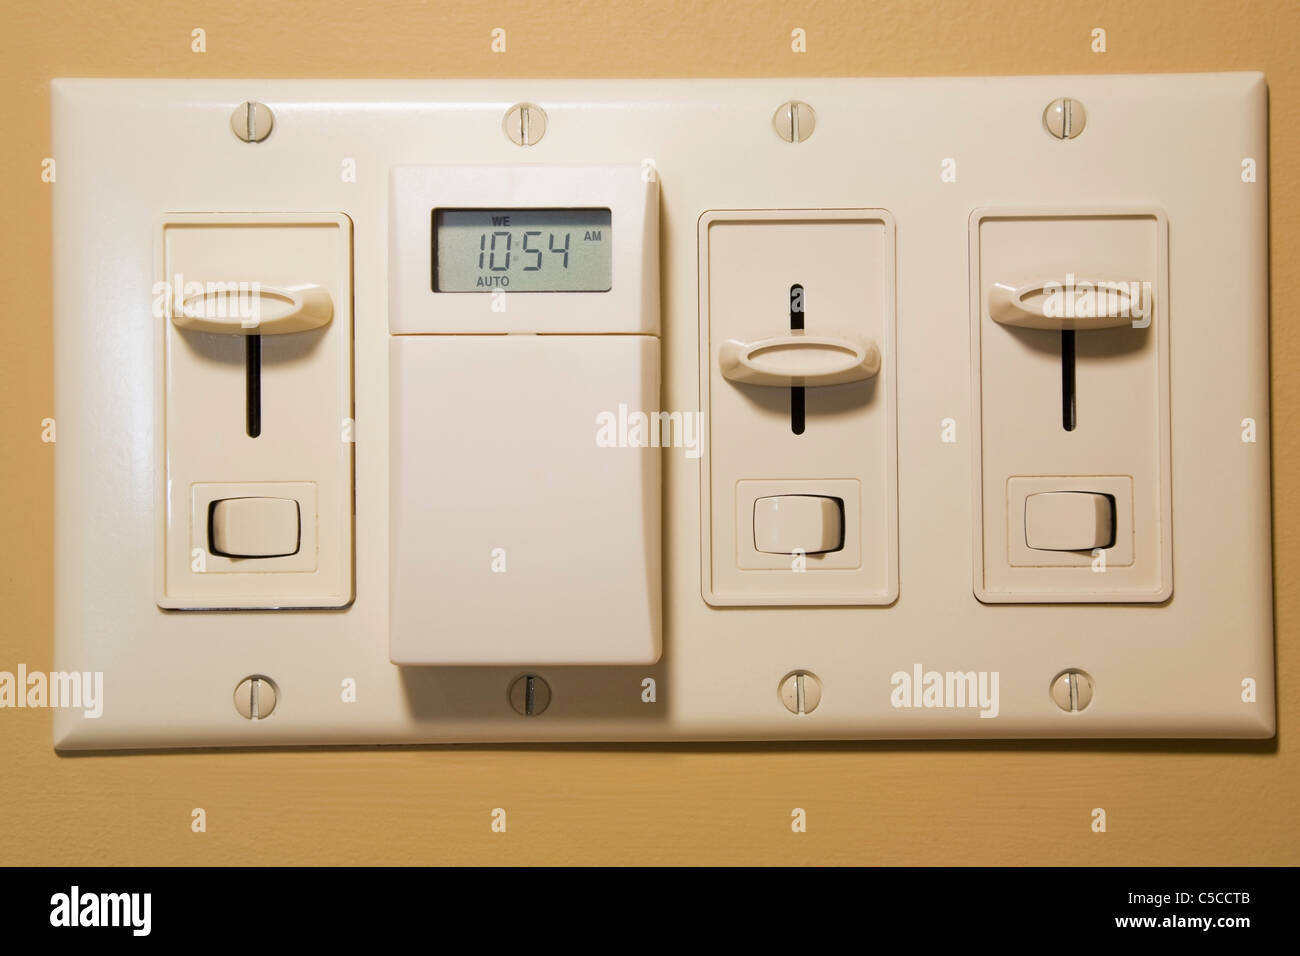 Close-Up Of Electrical Wall Switches Inside A Residential Home Stock ...